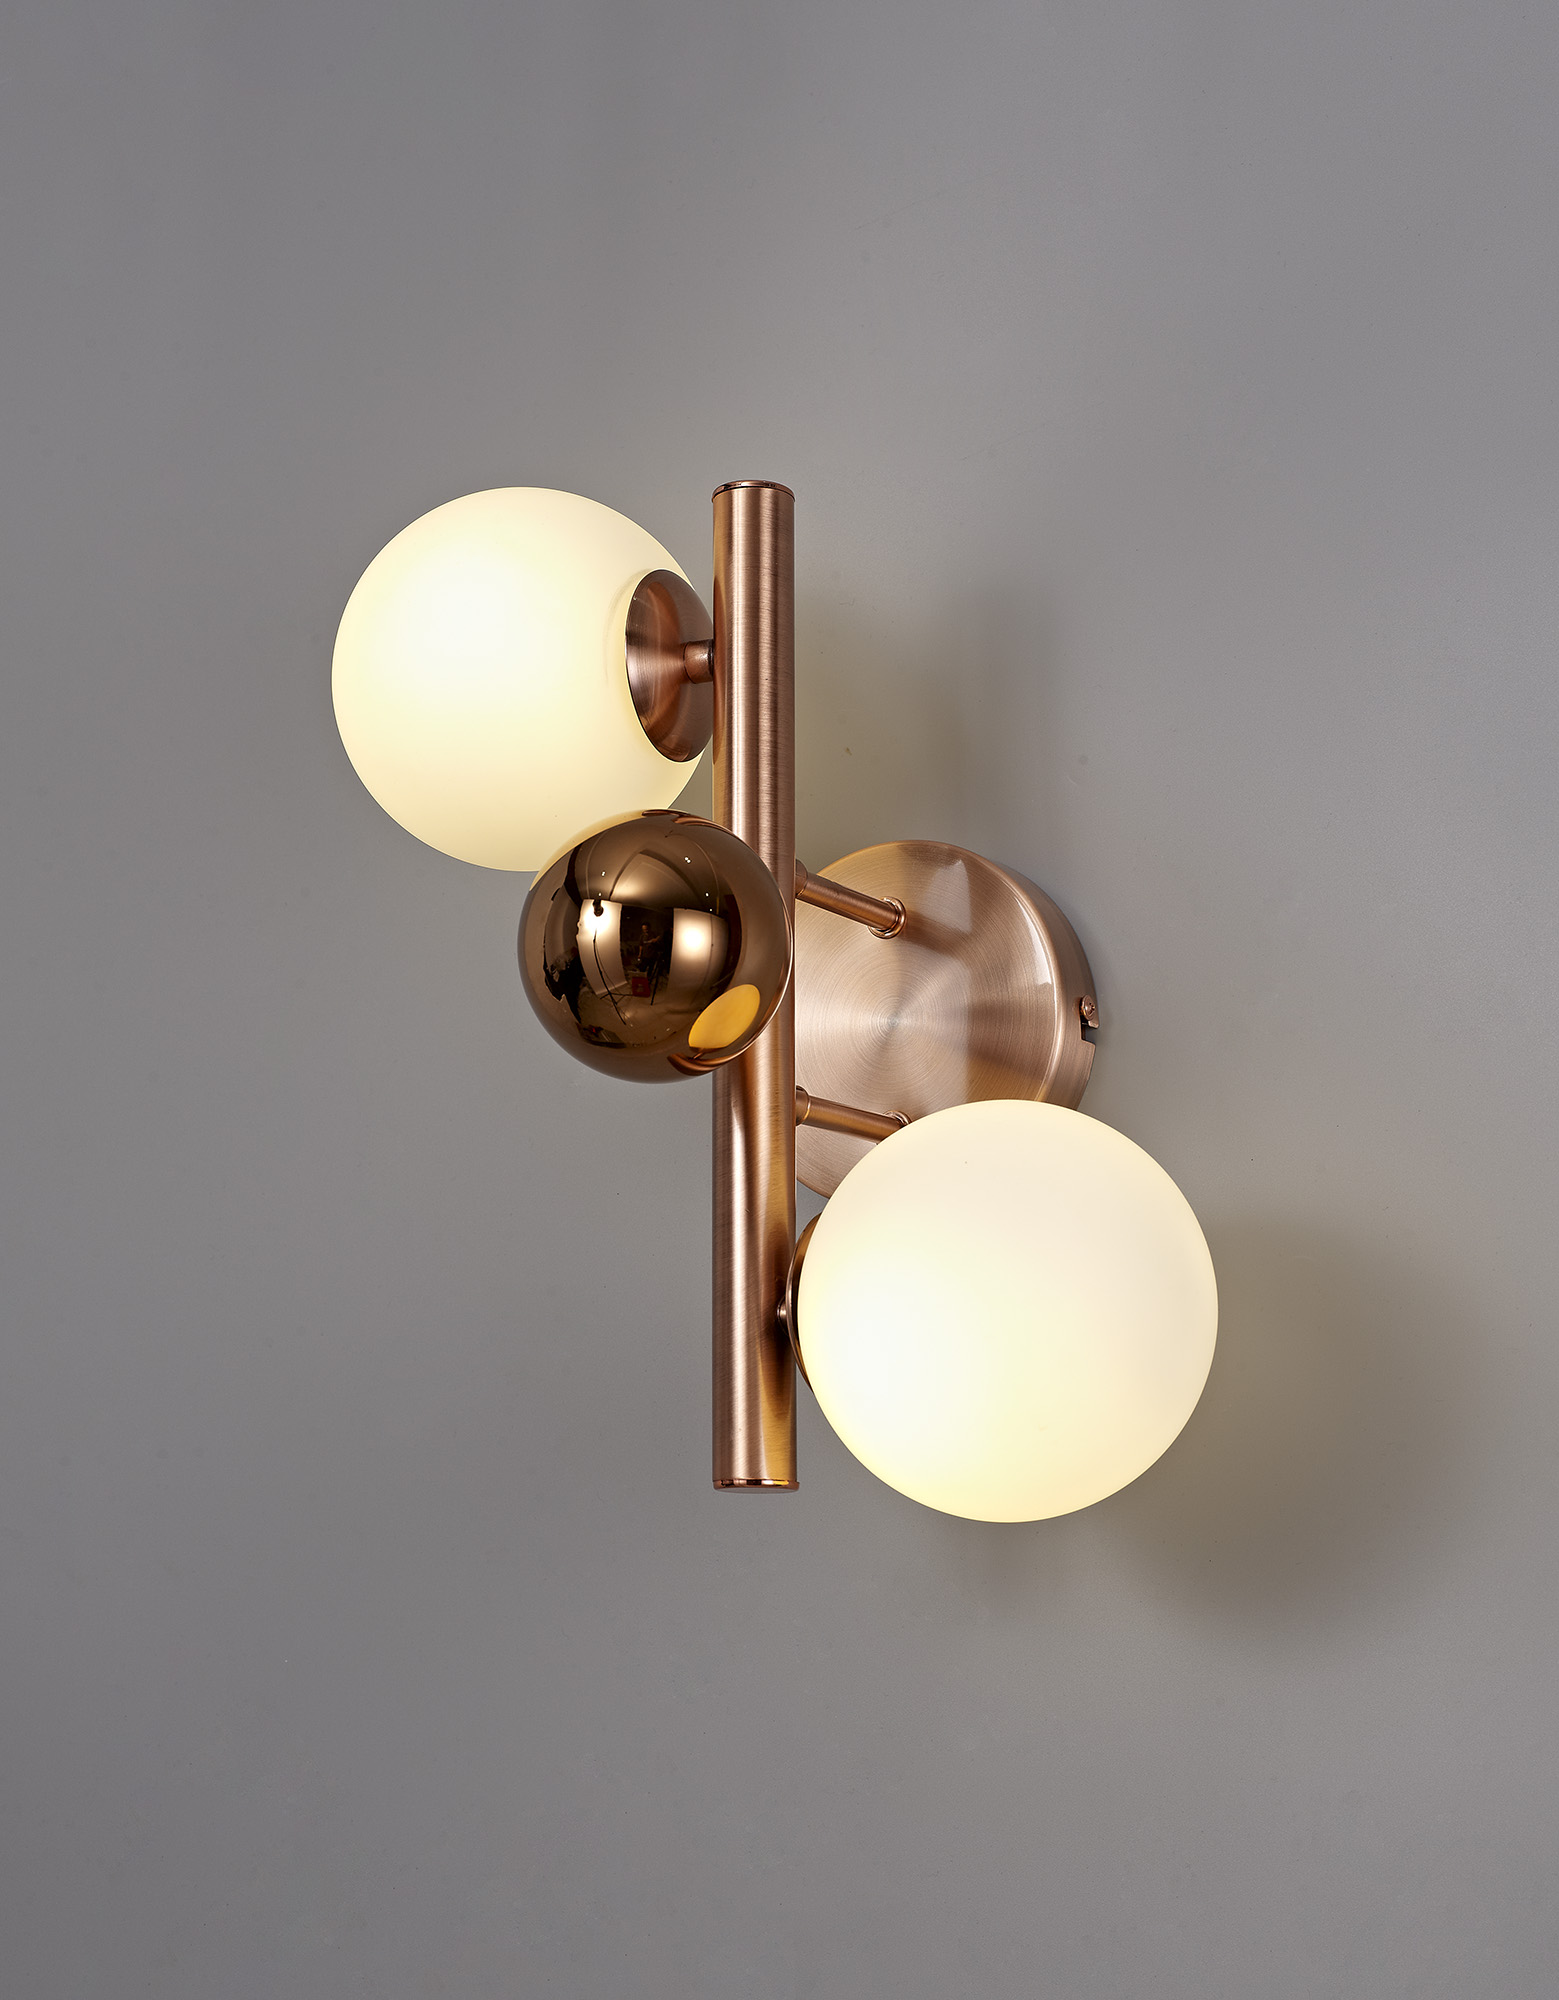 Wall Lamp, 2 x G9, Antique Copper/Opal & Copper Glass